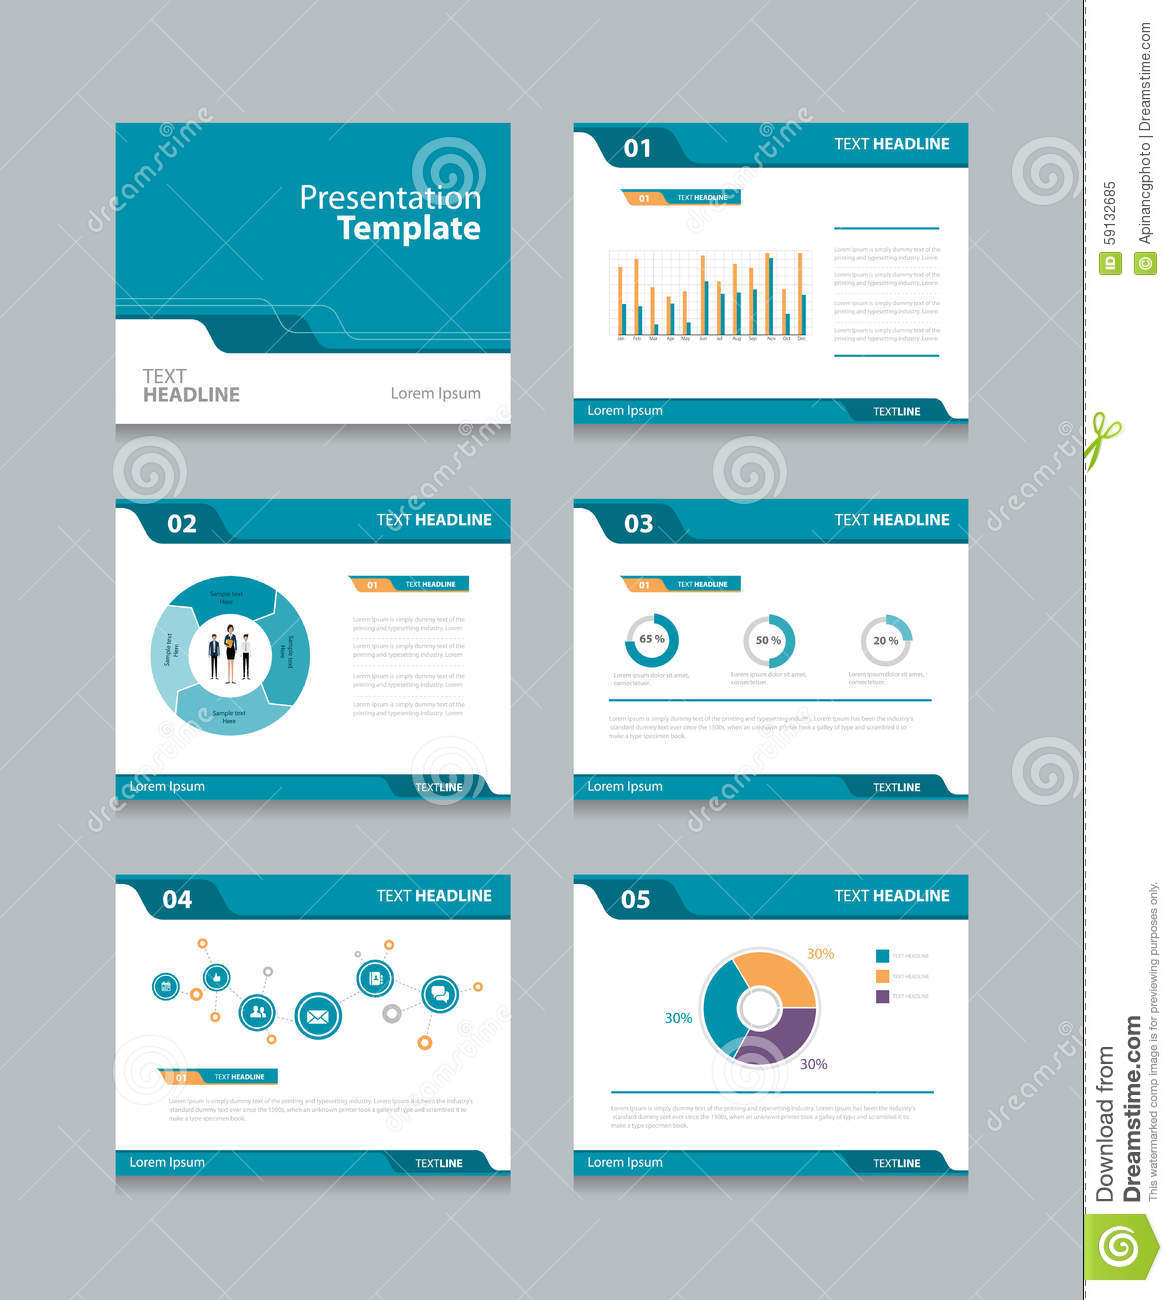 Vector Template Presentation Slides Background Design.info Graphs And Charts  . Slides Design. Graph, Corporate.  Graph Charts Templates